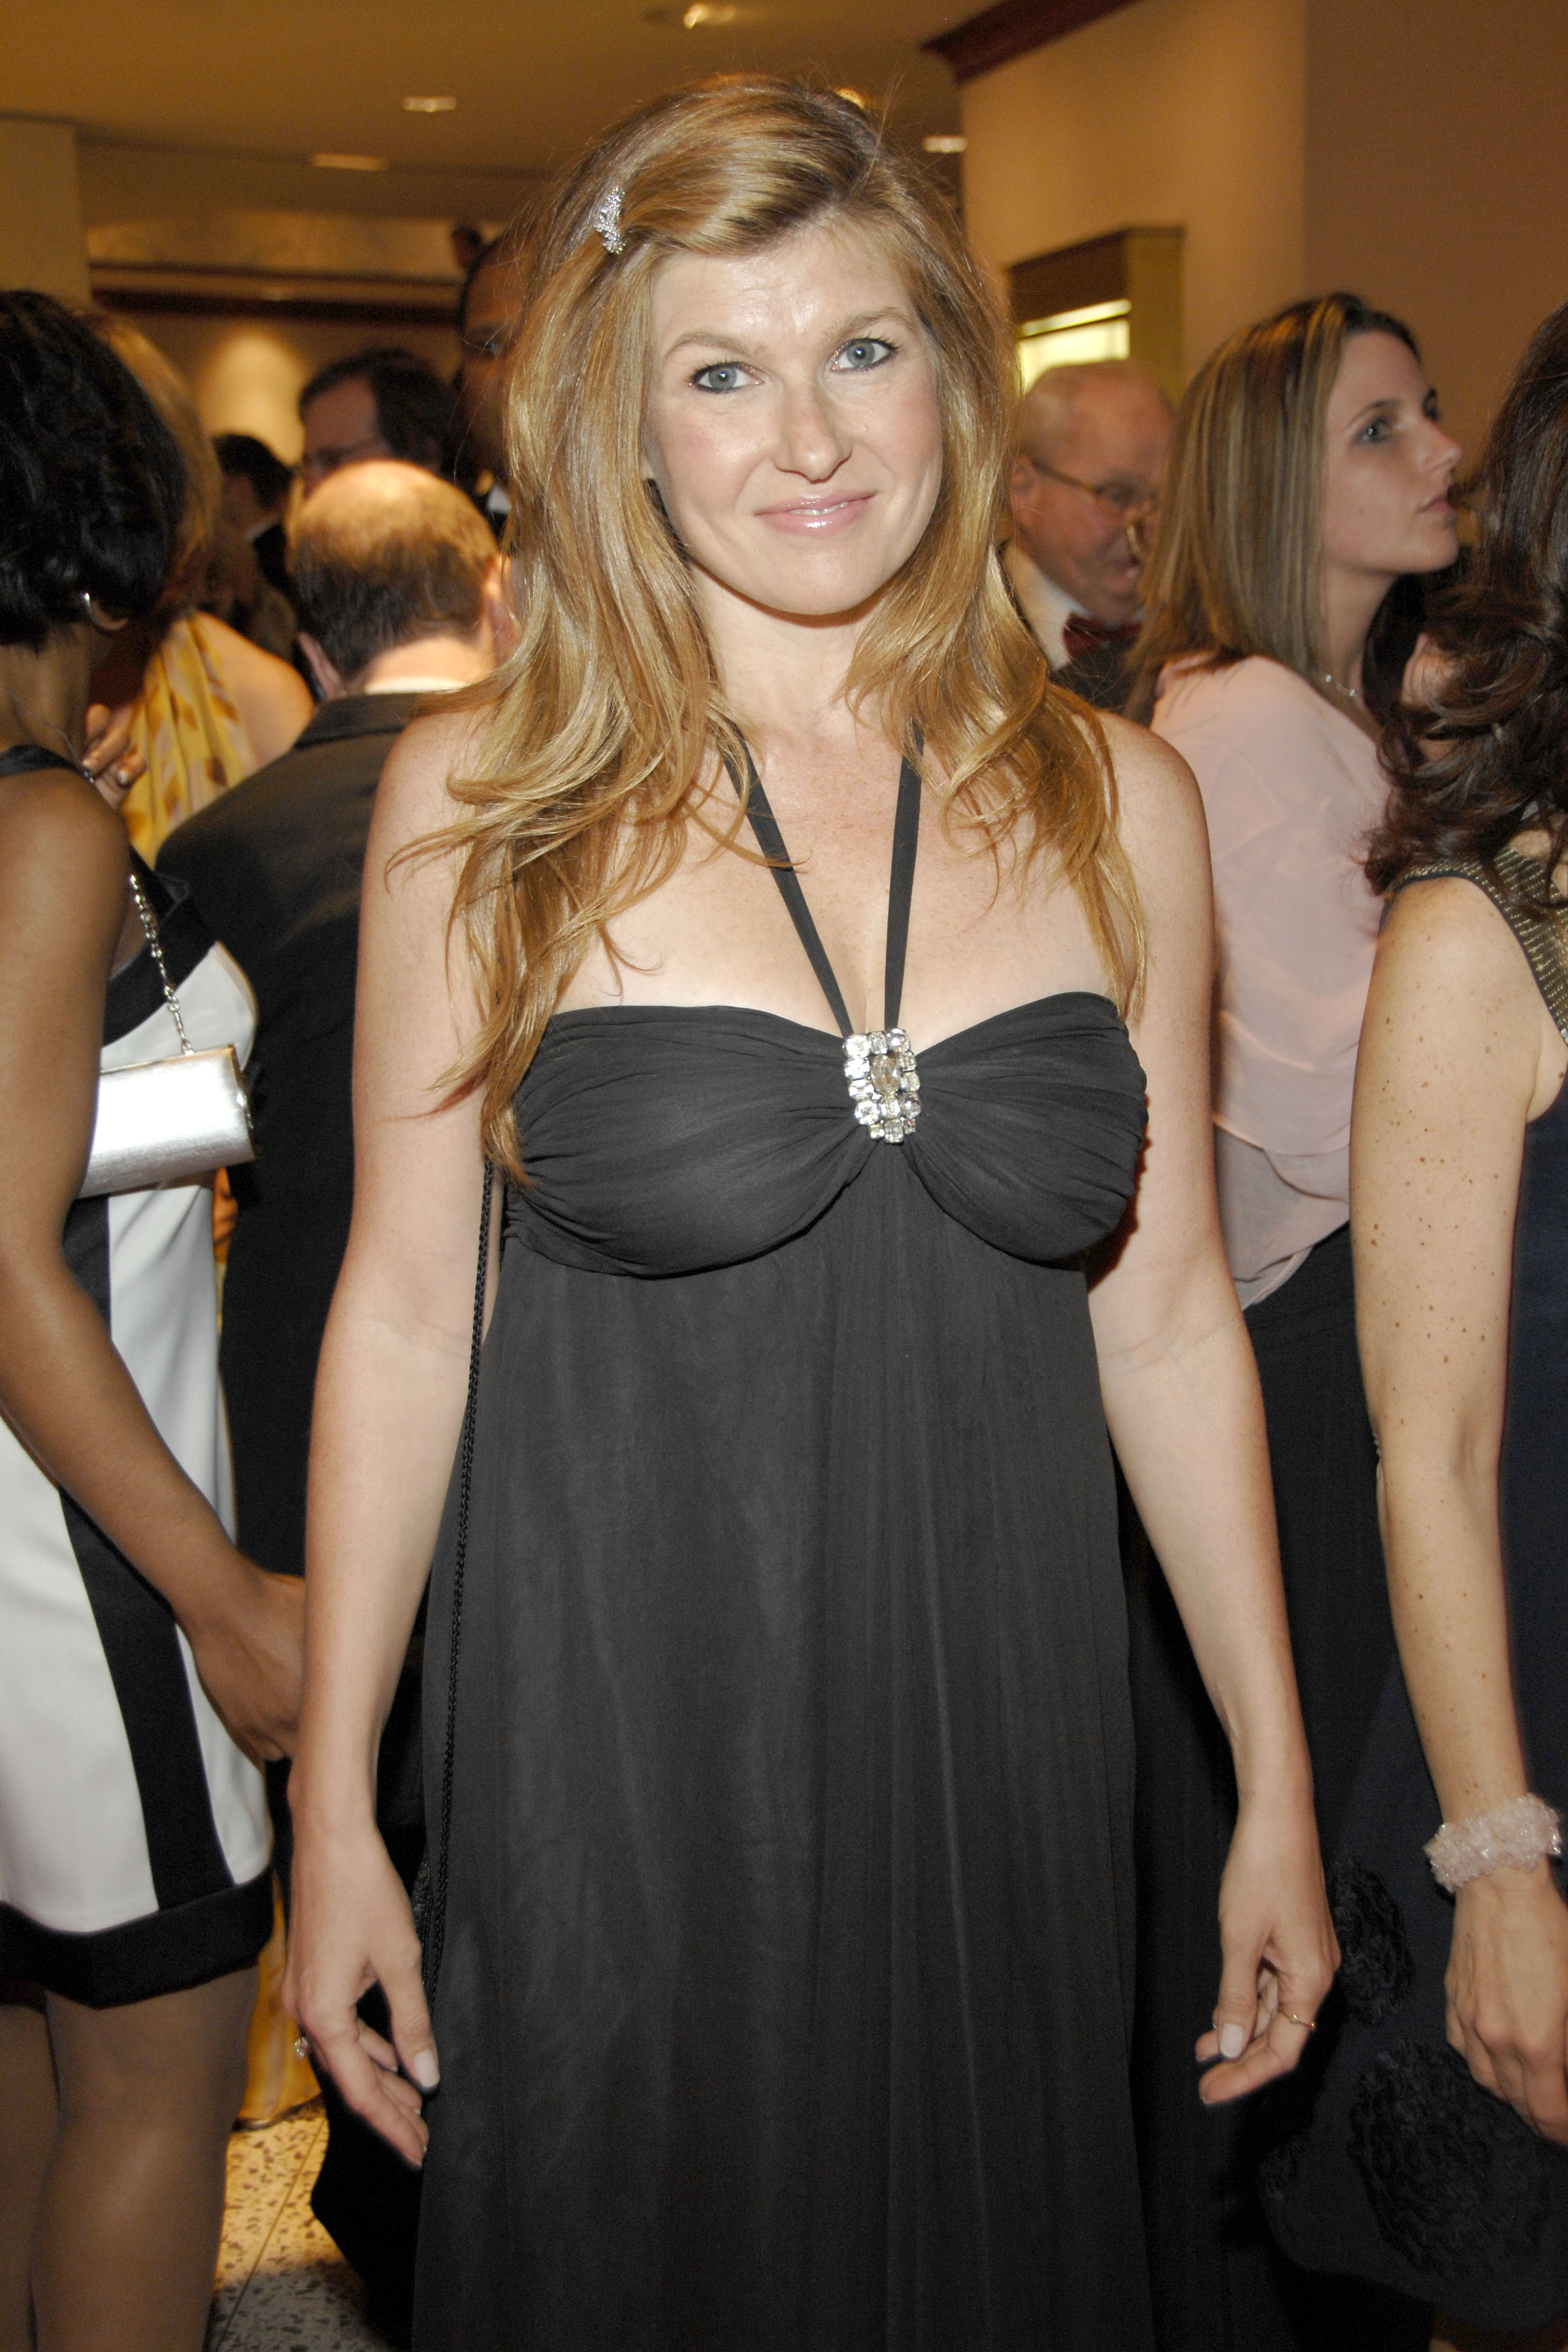 Connie Britton Nude - naked picture, pic, photo shoot